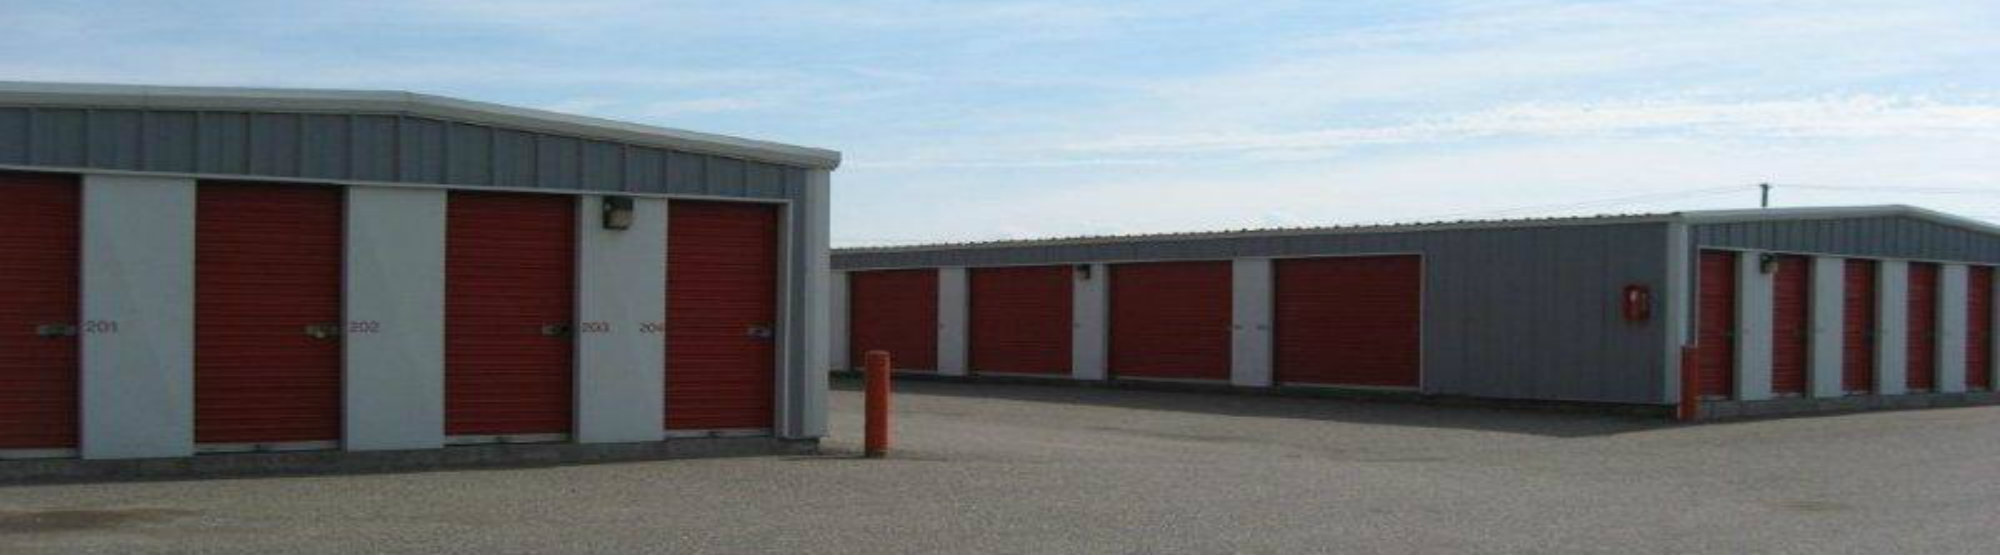 Storage Units in Prince George, BC